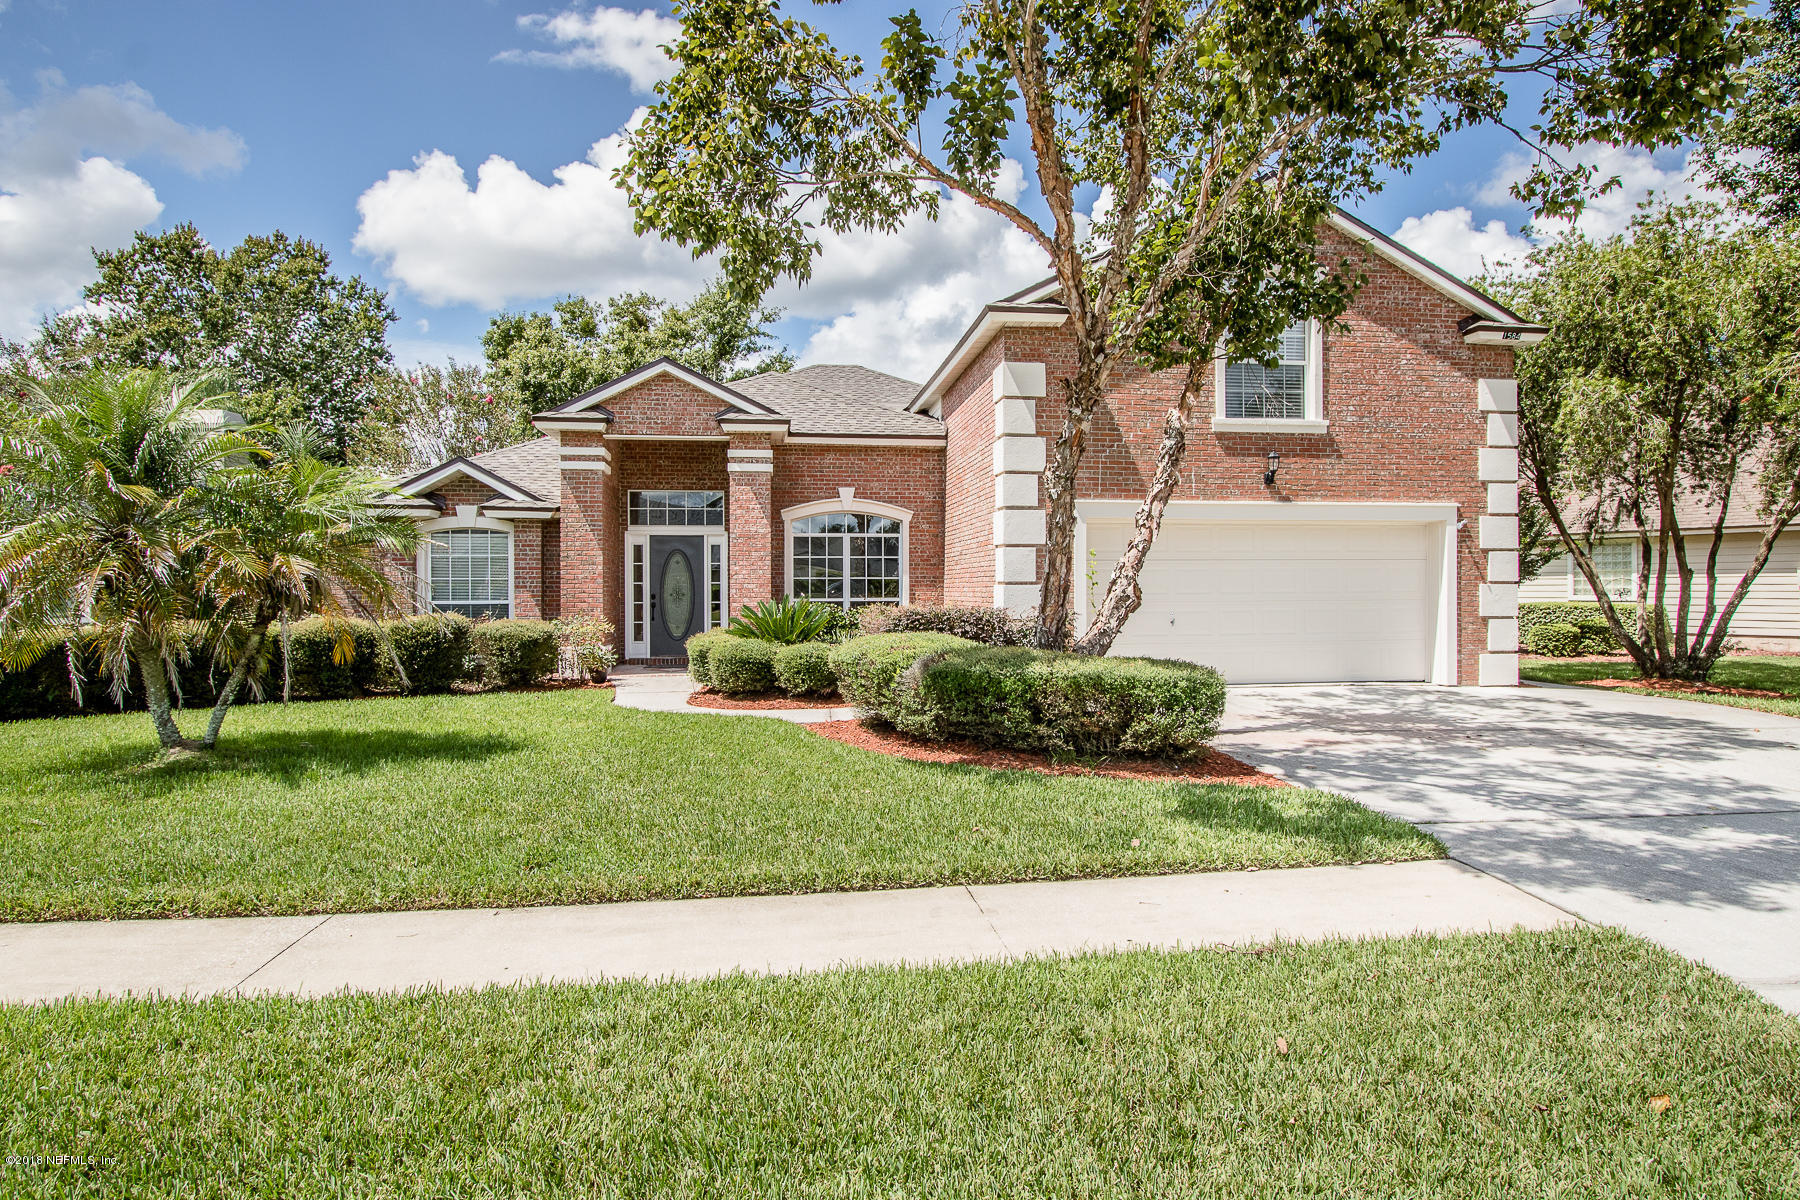 1584 RIVERTRACE, FLEMING ISLAND, FLORIDA 32003, 5 Bedrooms Bedrooms, ,3 BathroomsBathrooms,Residential - single family,For sale,RIVERTRACE,955586